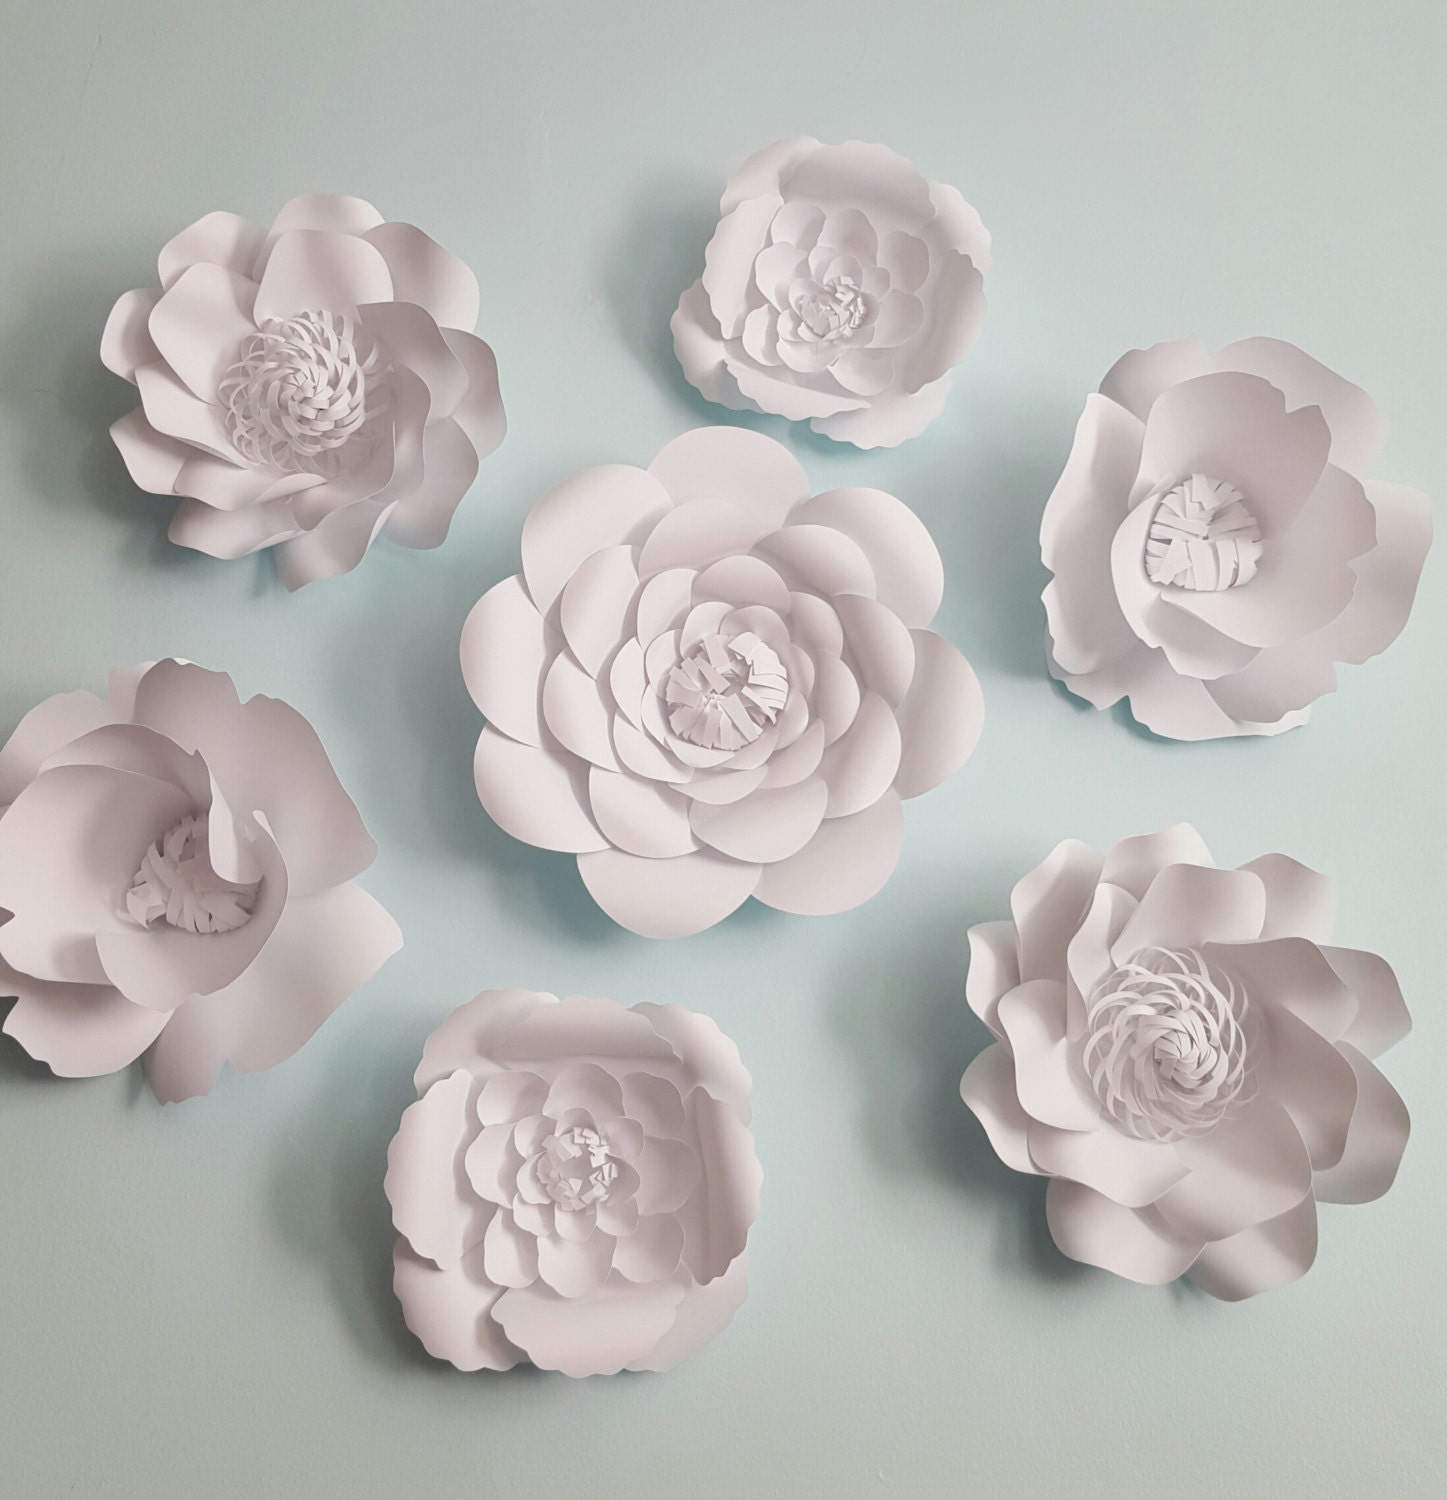 Large paper flowers extra large flowers 7 flowers wedding zoom dhlflorist Choice Image